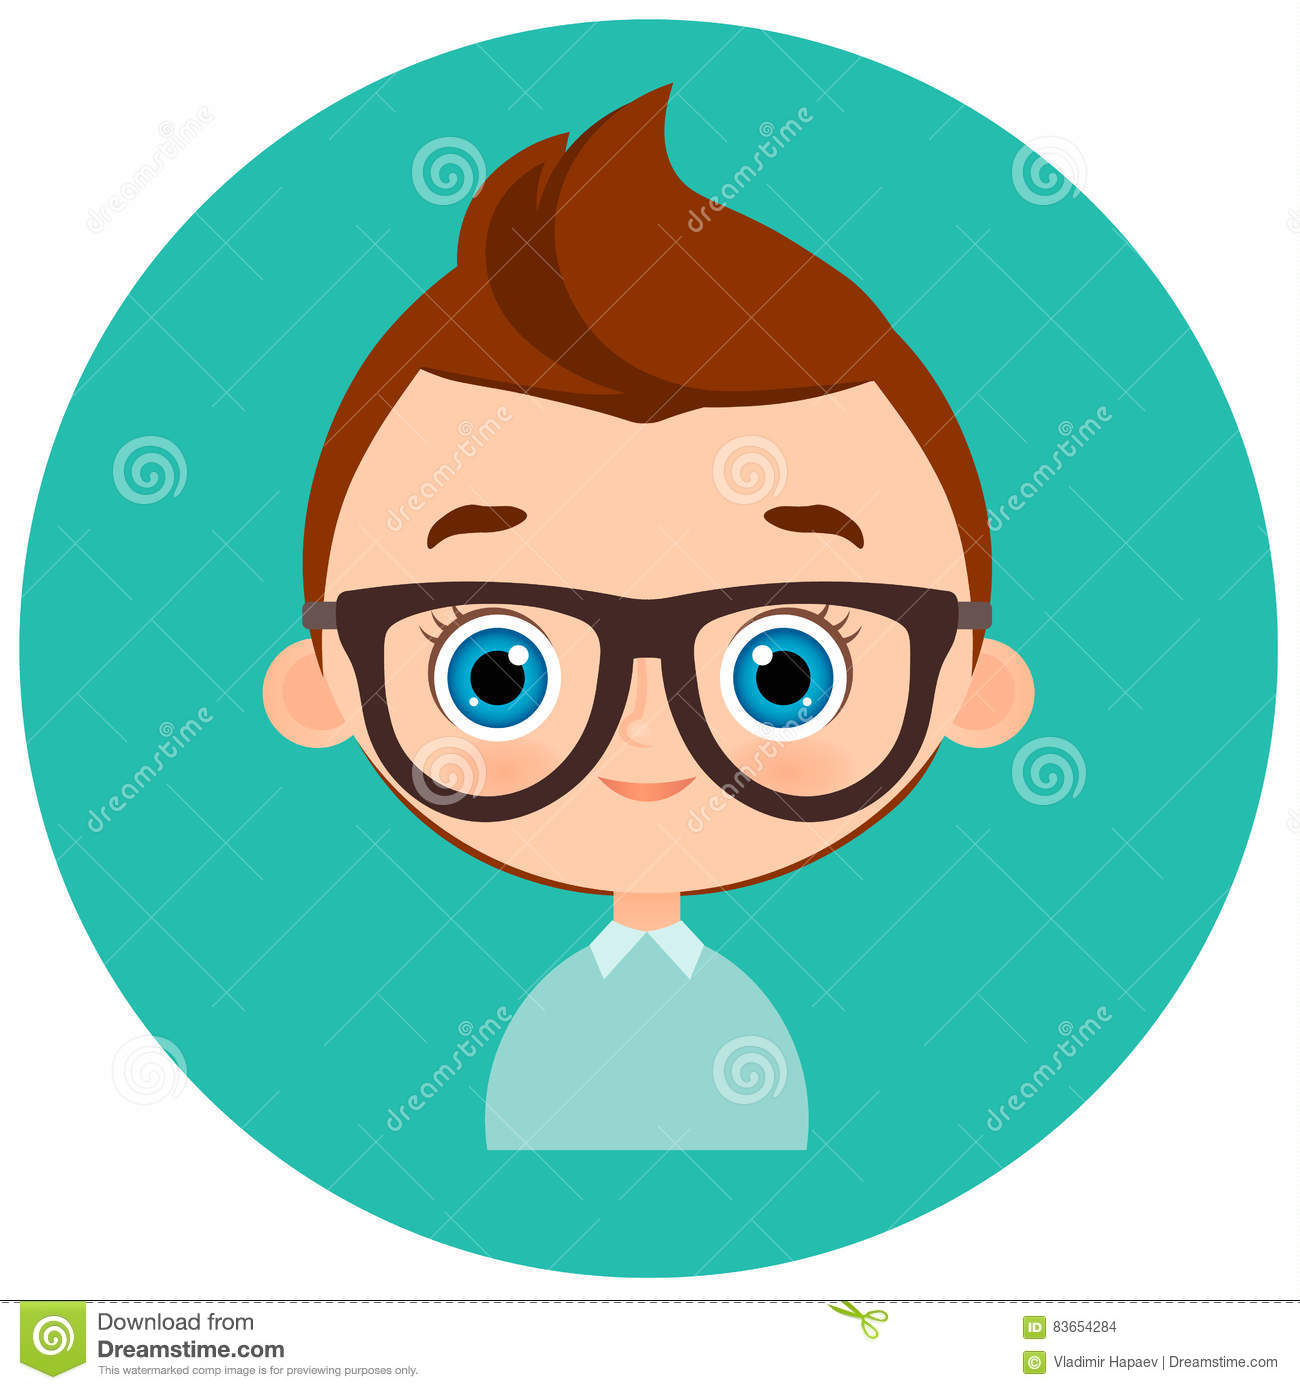 Faces Avatar In Circle. Portrait Young Boy With Glasses